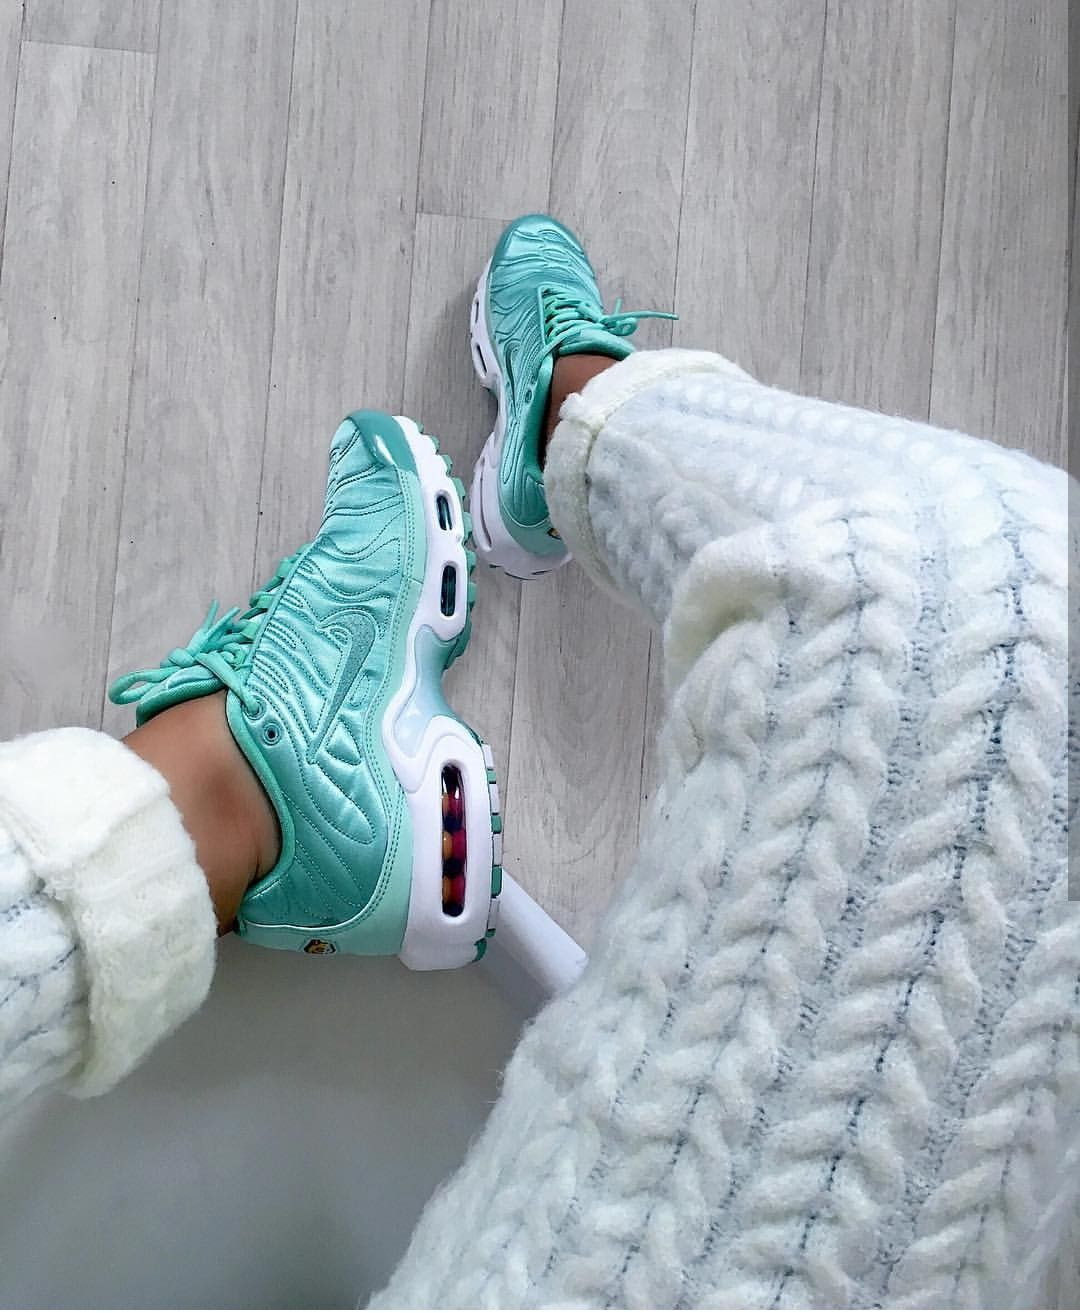 new styles 31a7f be428 Nike Air Max 95 in türkisturquoise  Foto nawellleee Instagram